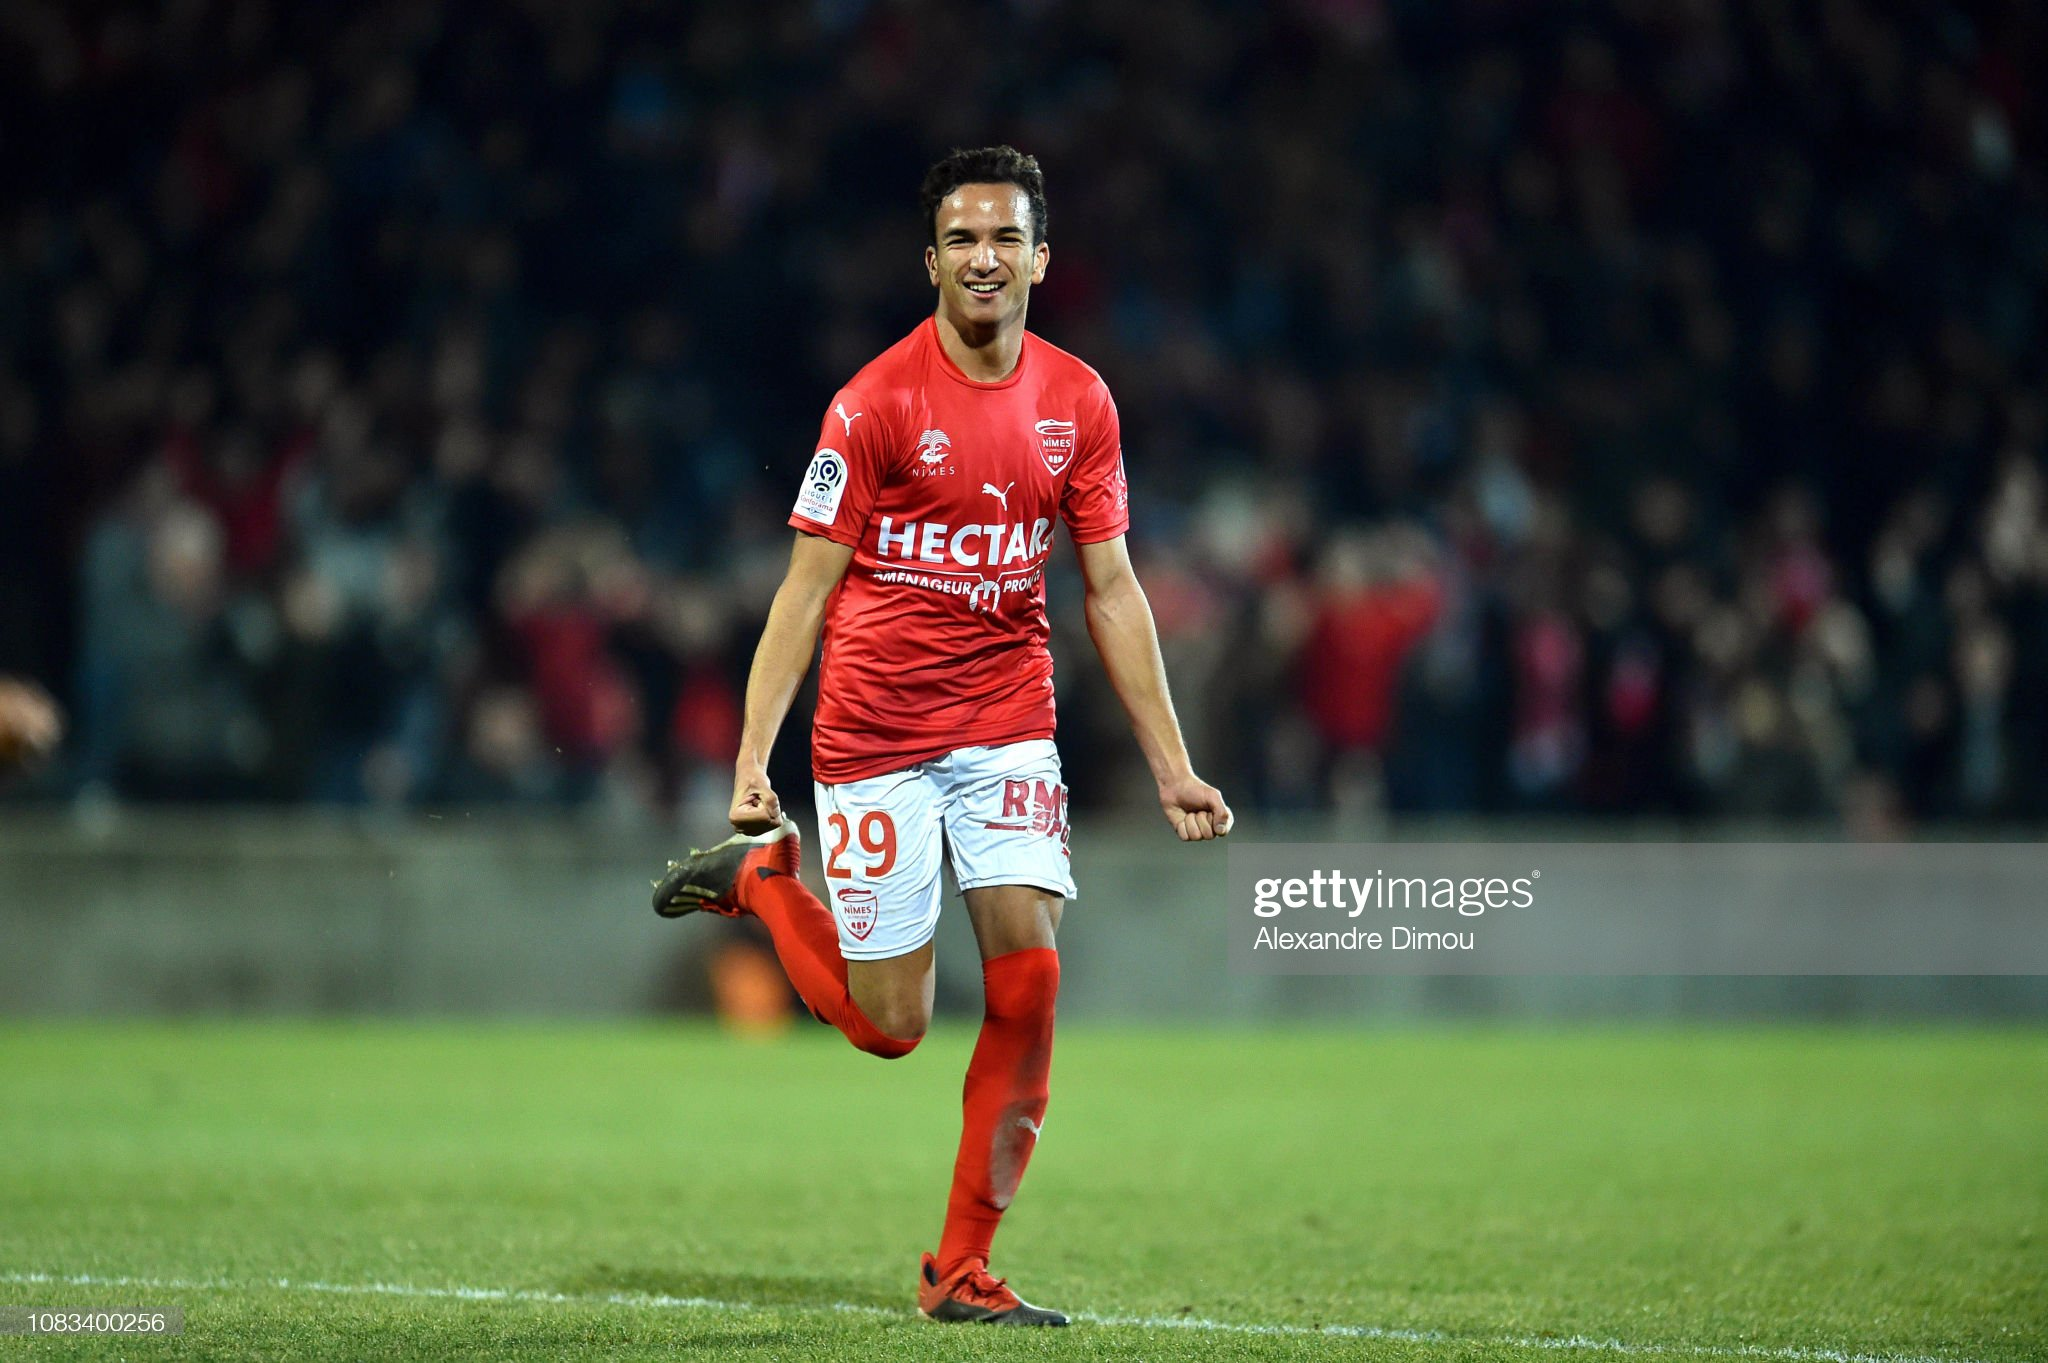 32 EME JOURNEE DE LIGUE 1 CONFORAMA : OM - NO  Sofiane-alakouch-of-nimes-celebrates-scoring-his-first-sides-goal-picture-id1083400256?s=2048x2048